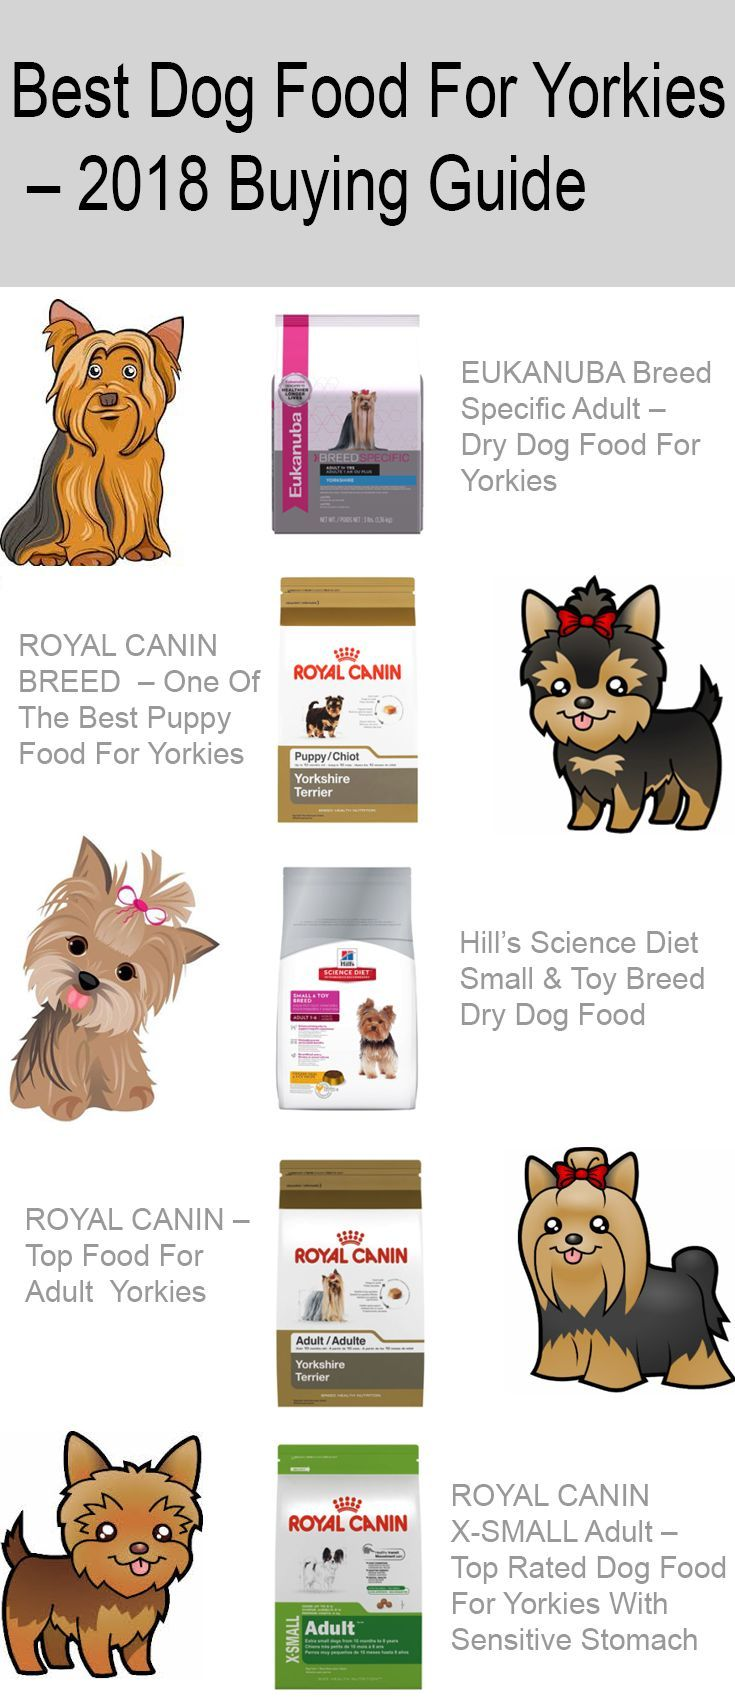 5 Best Dog Food For Yorkies Teacup Puppy 2019 Brands Best